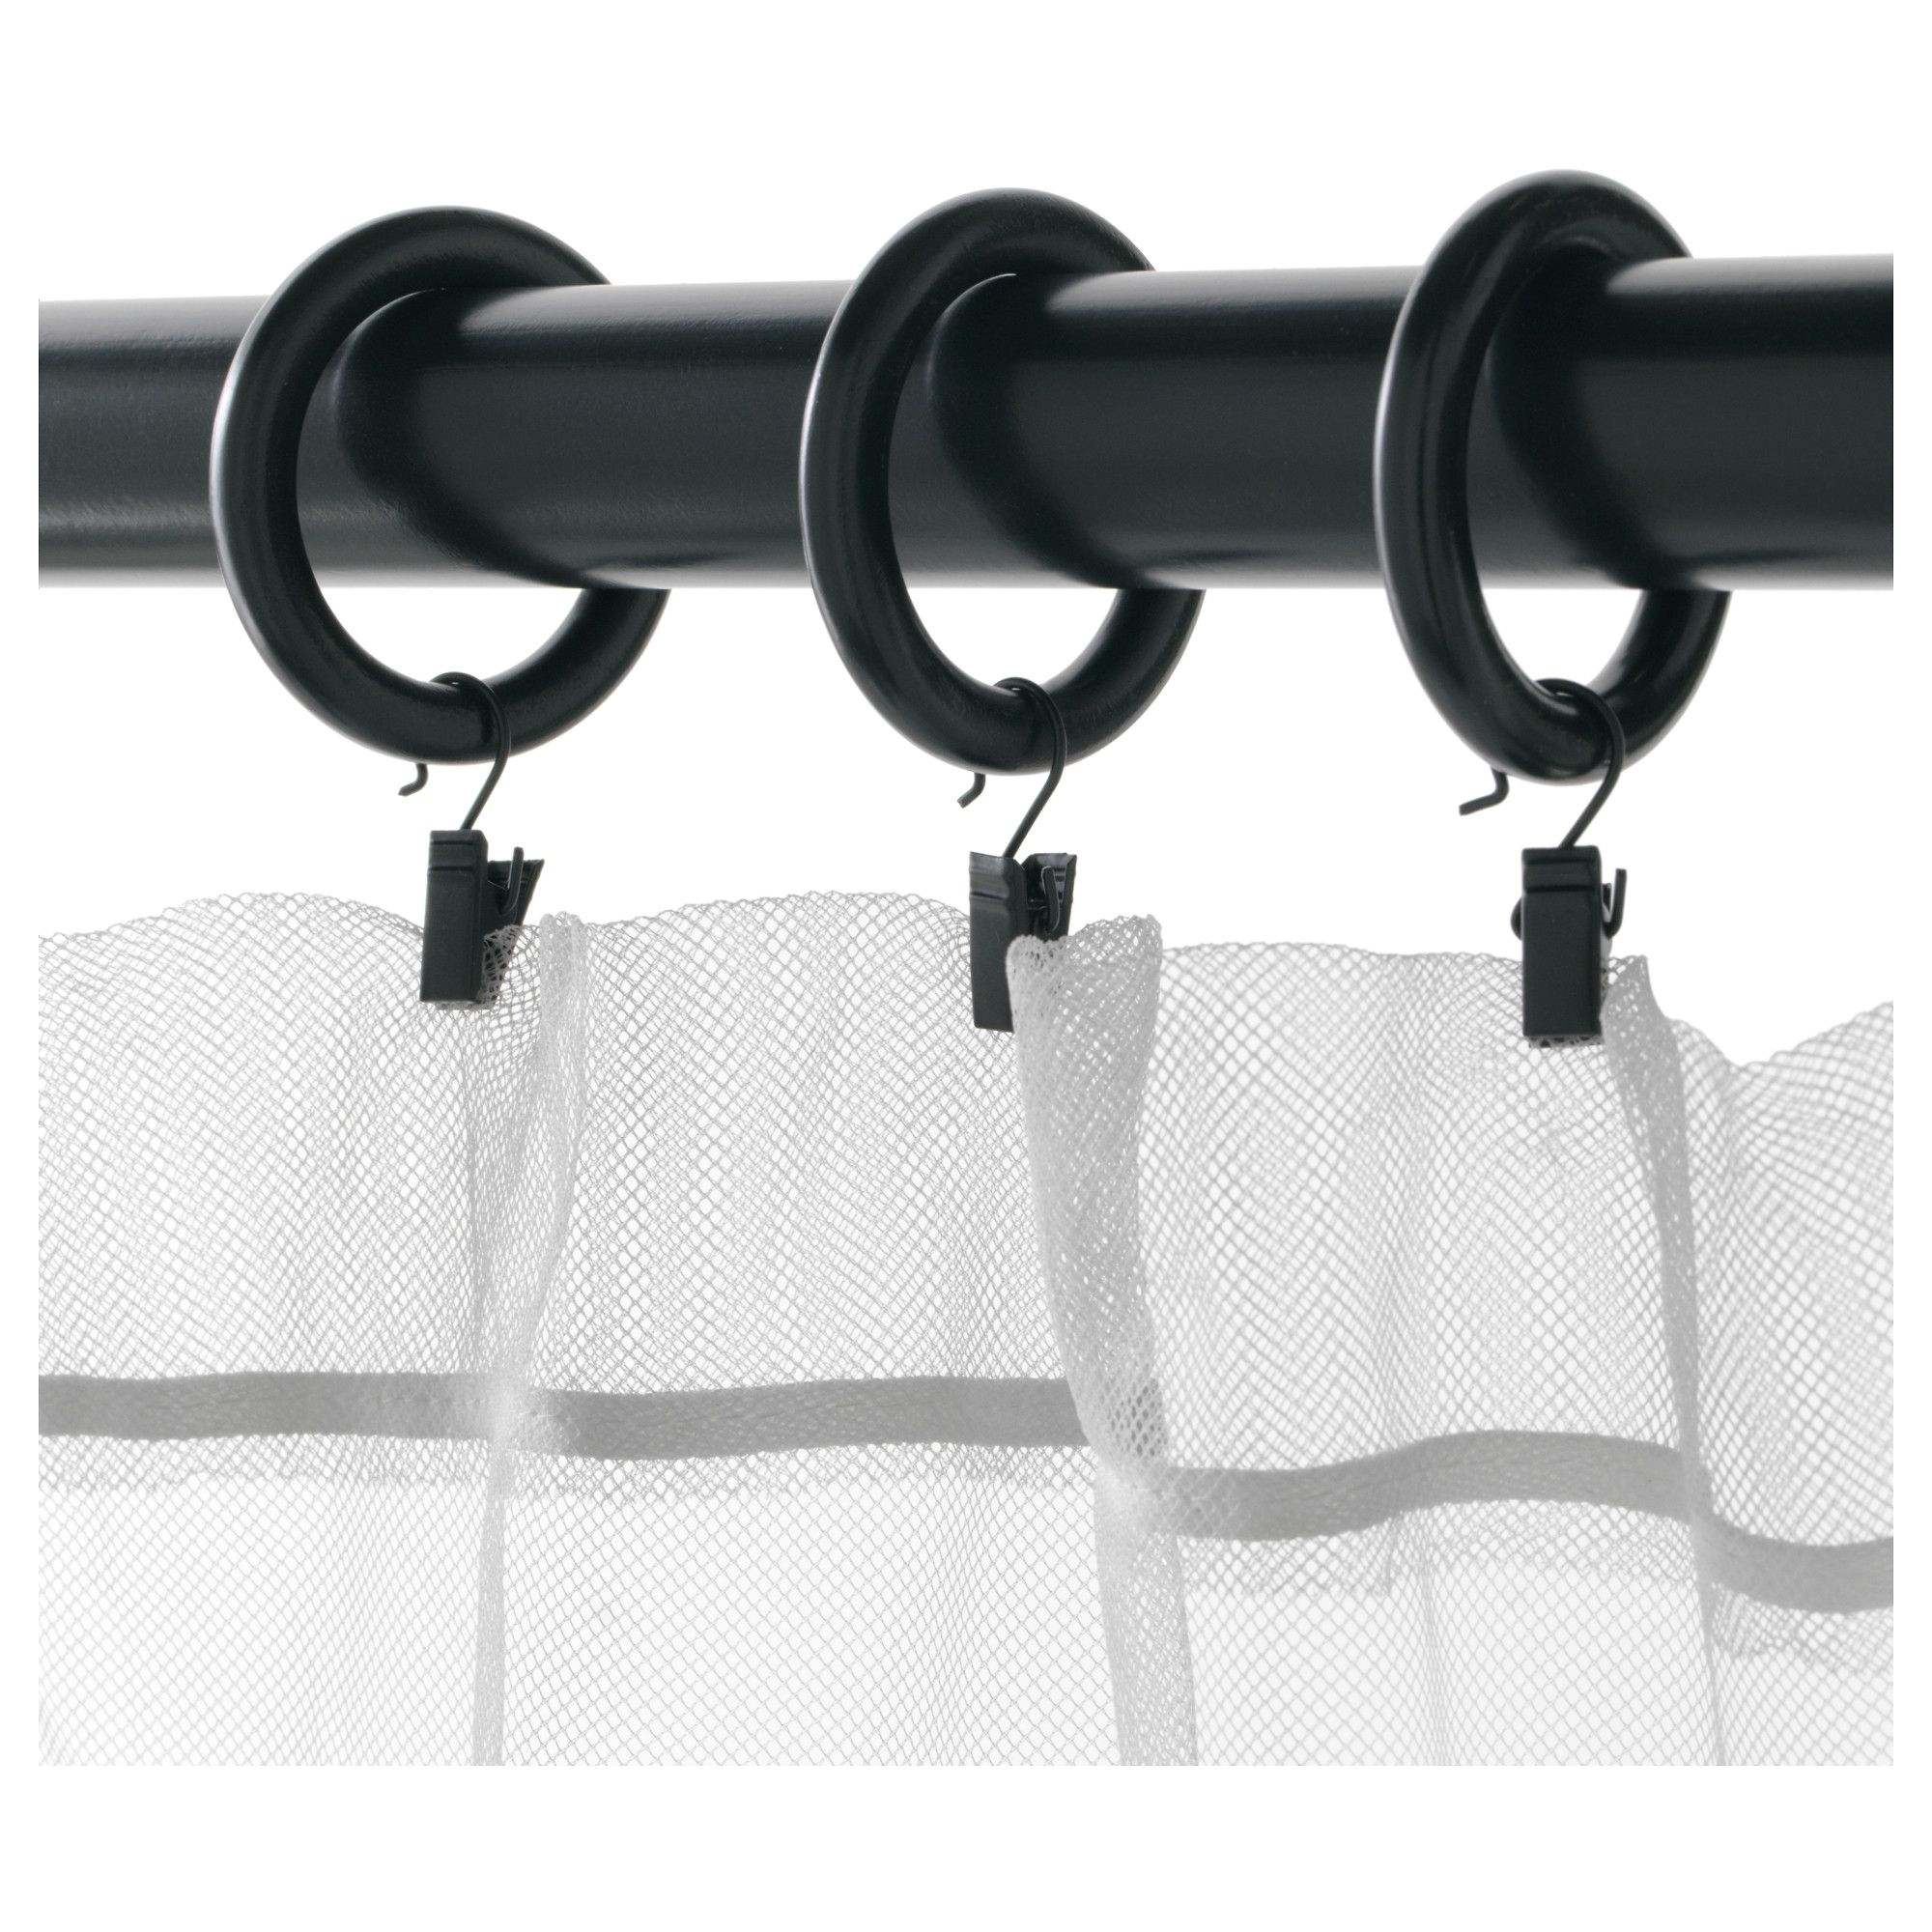 Furniture And Home Furnishings Curtains With Rings Curtain Rings With Clips Ikea